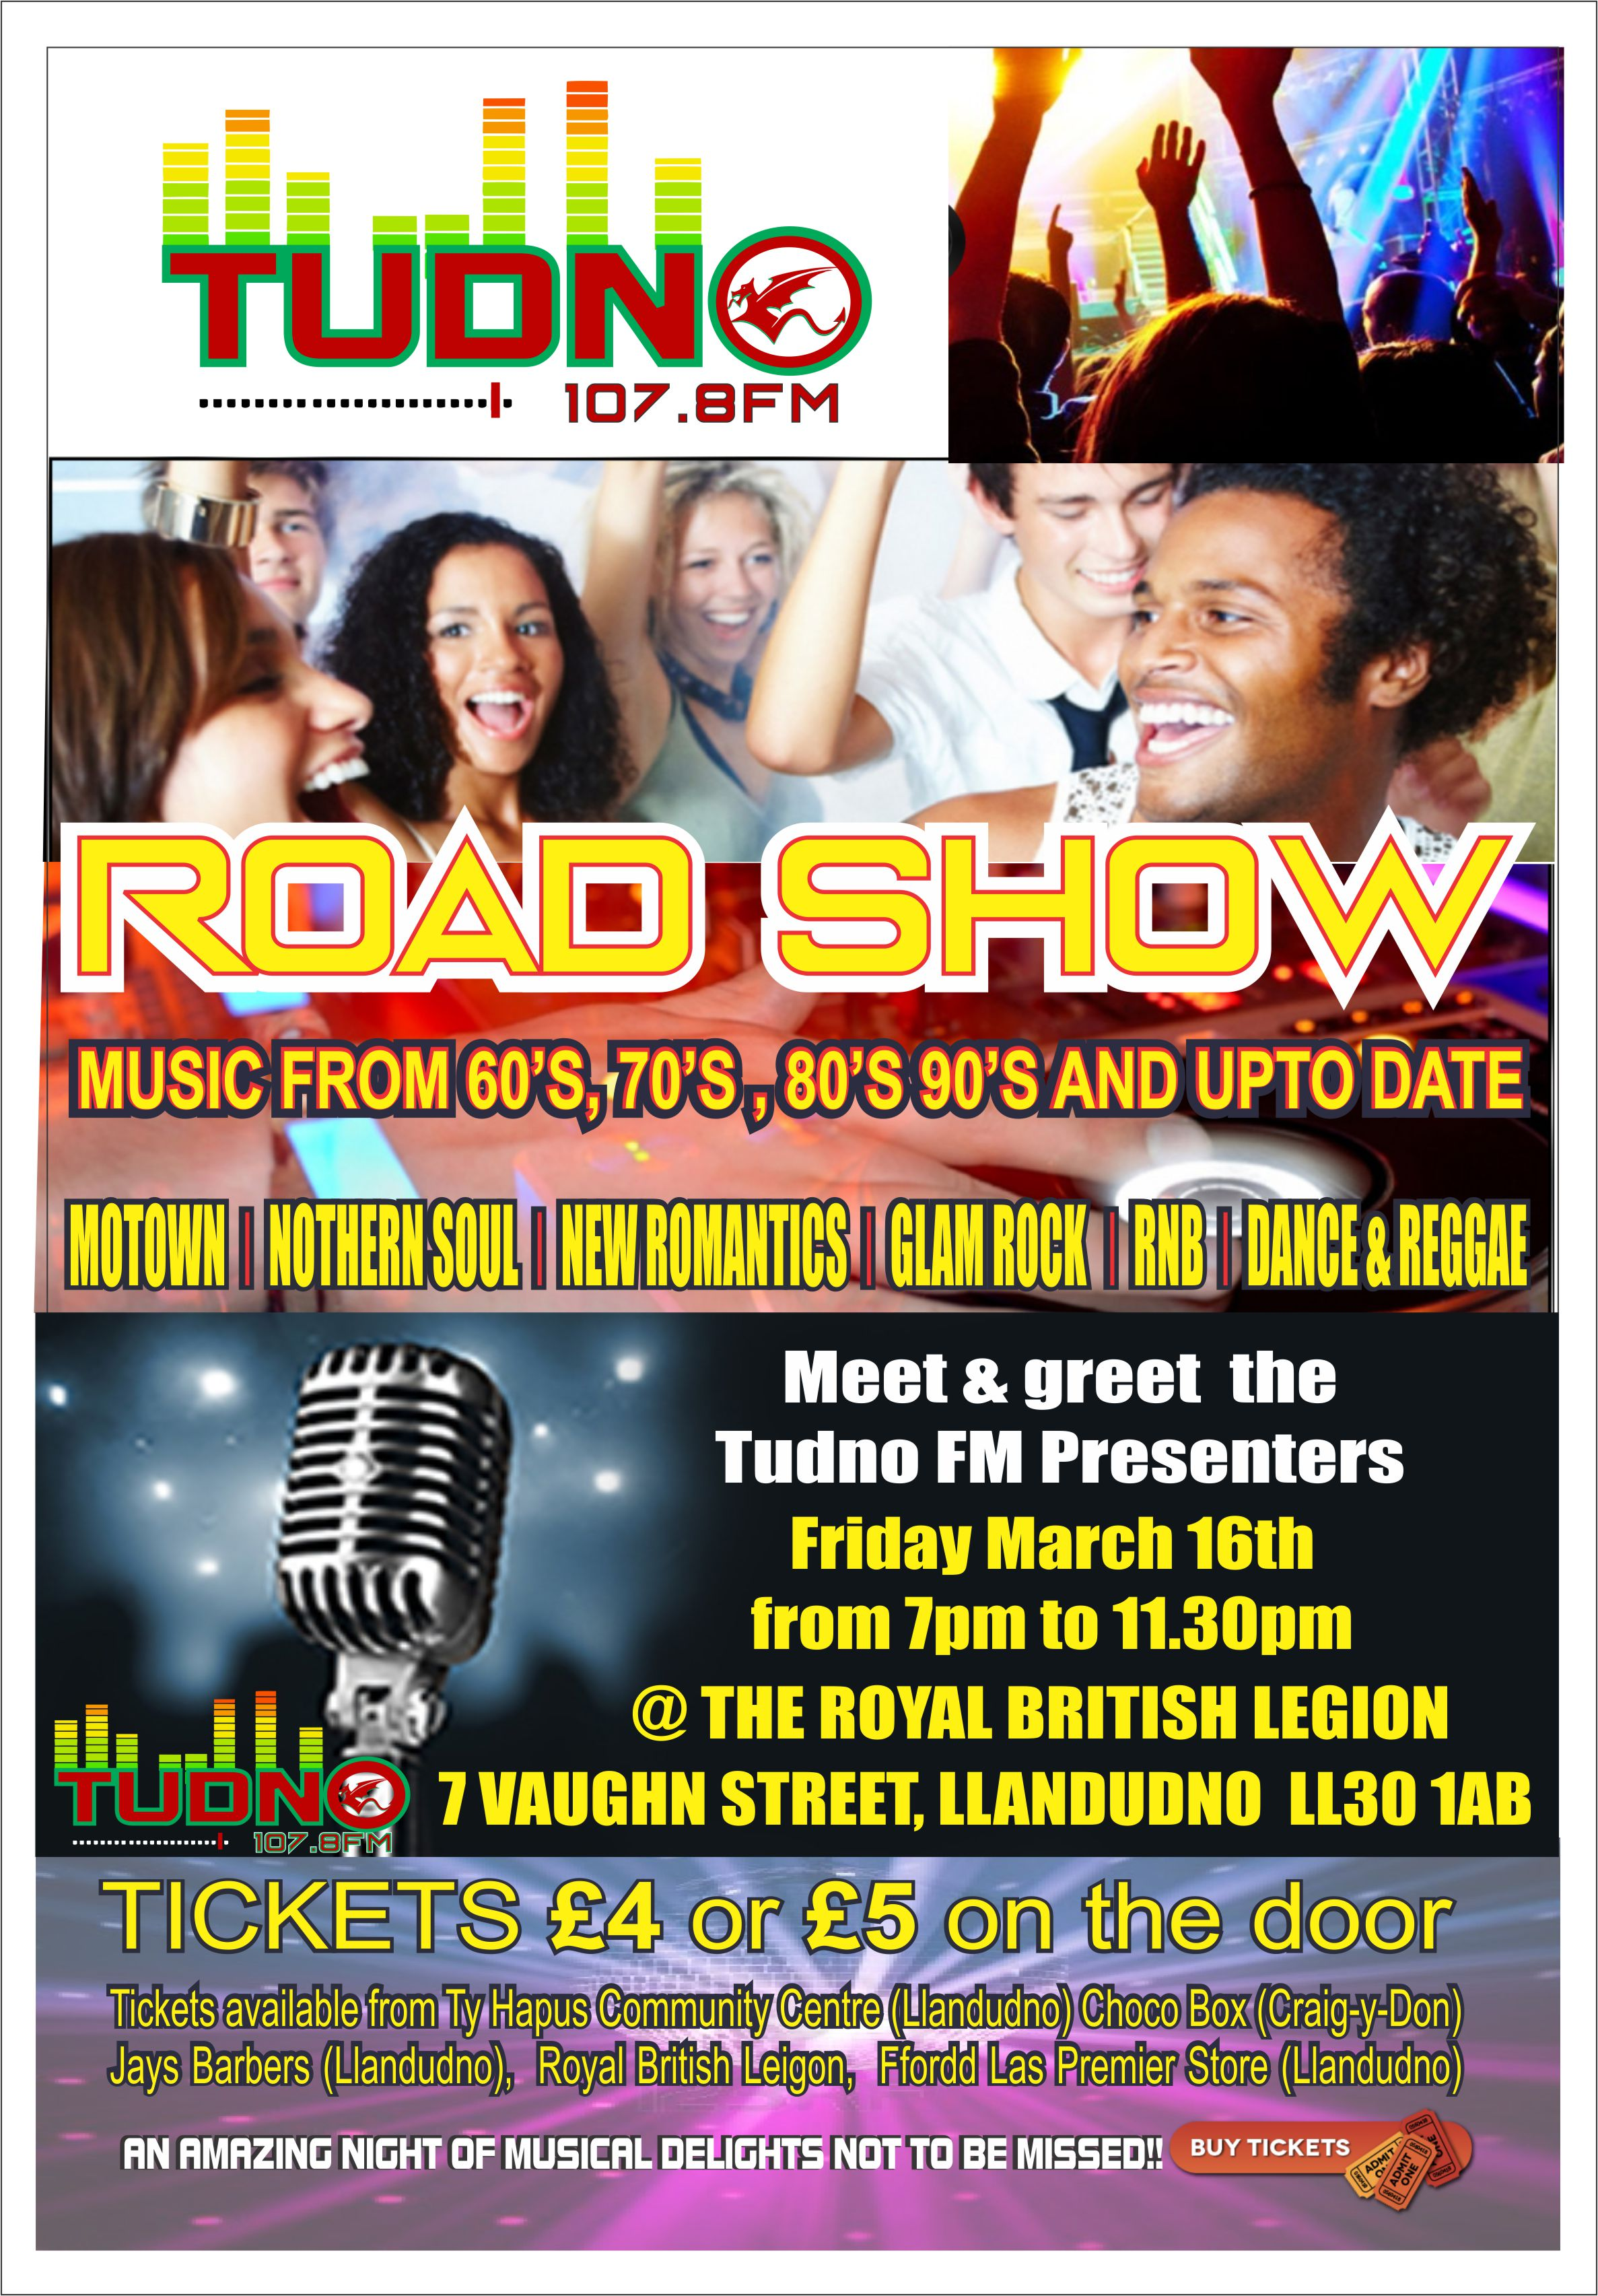 Tudno fmmeet and greet tudno fm presenters at the musical mix night friday 16th march at the royal british legion 7 vaugn street llandudno ll30 1ab see the poster below for more details m4hsunfo